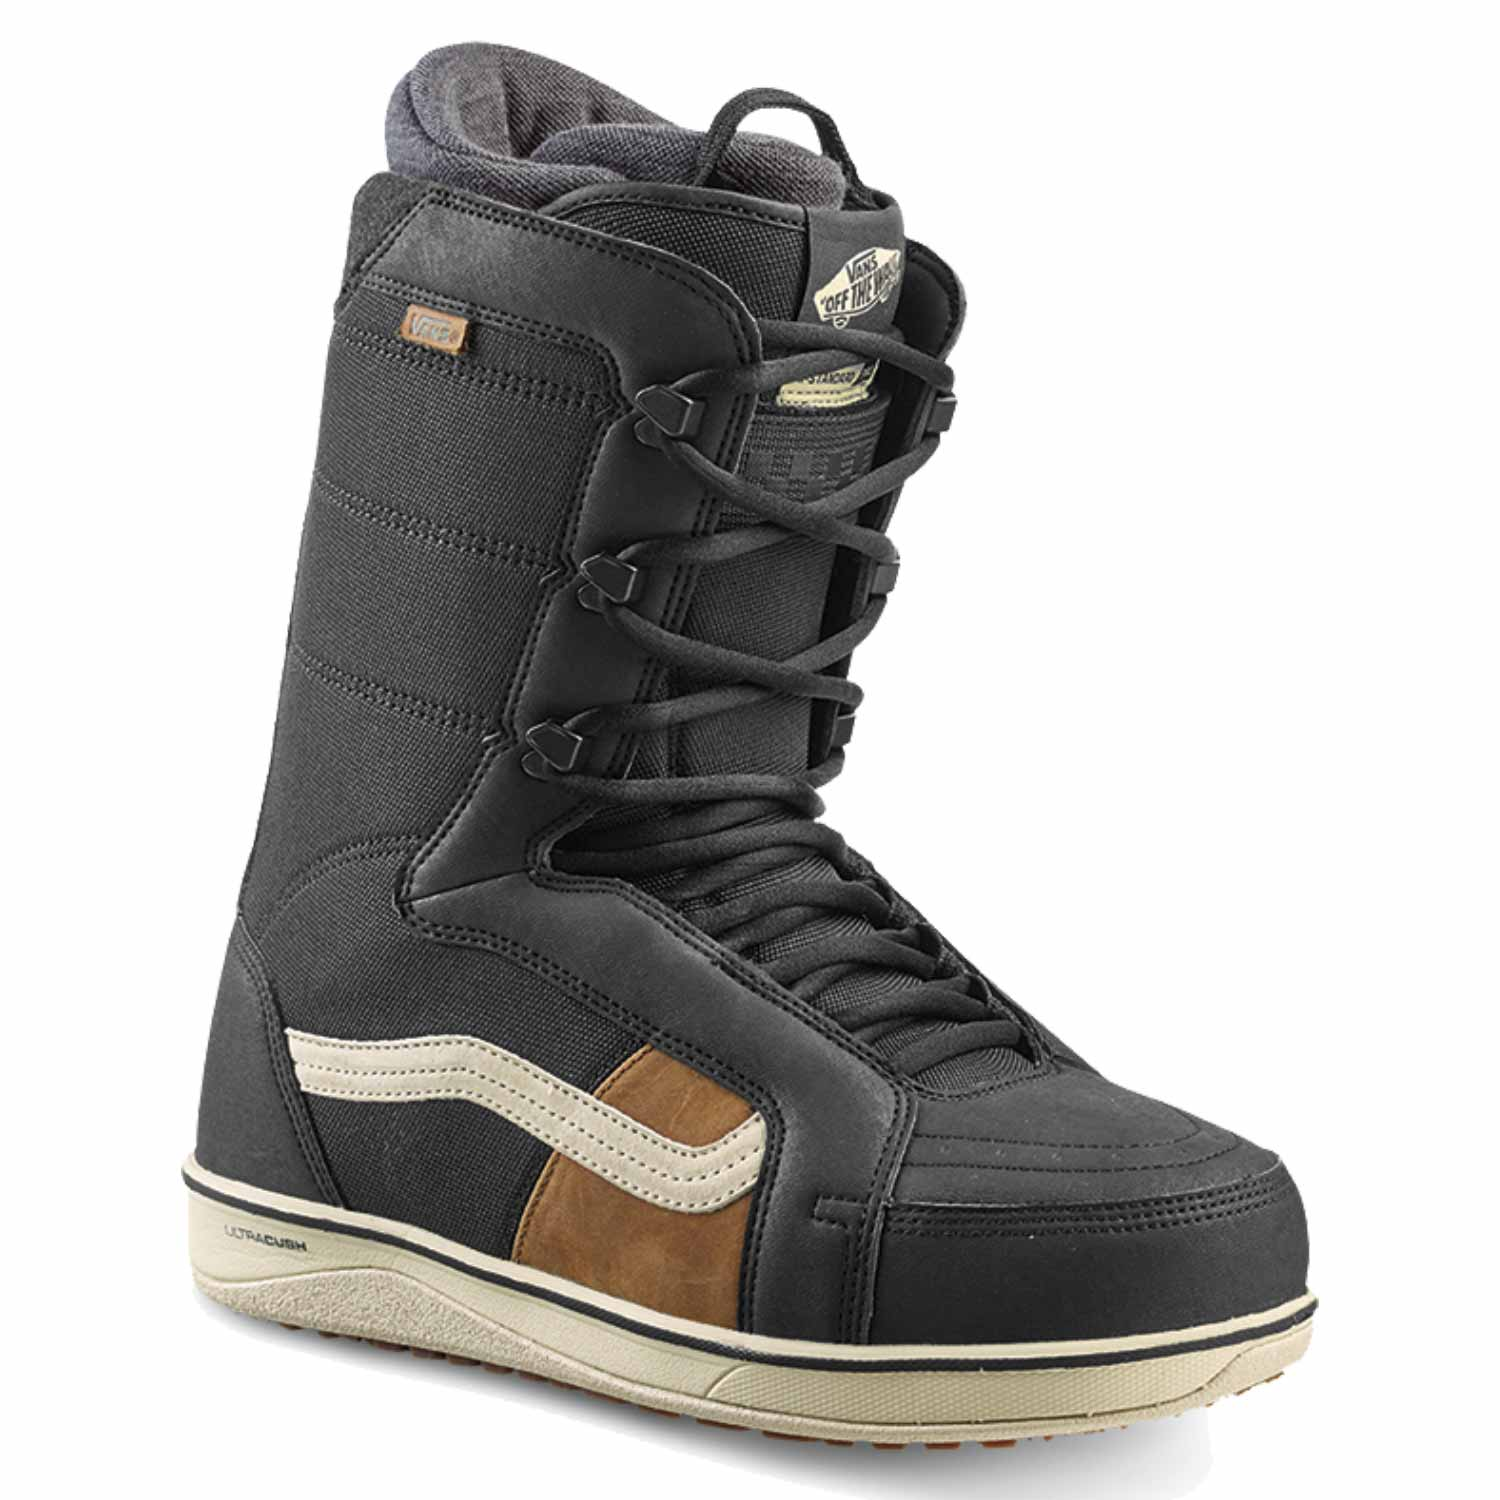 Vans Hi-Standard Pro Snowboard Boot Black/Off-White 2020